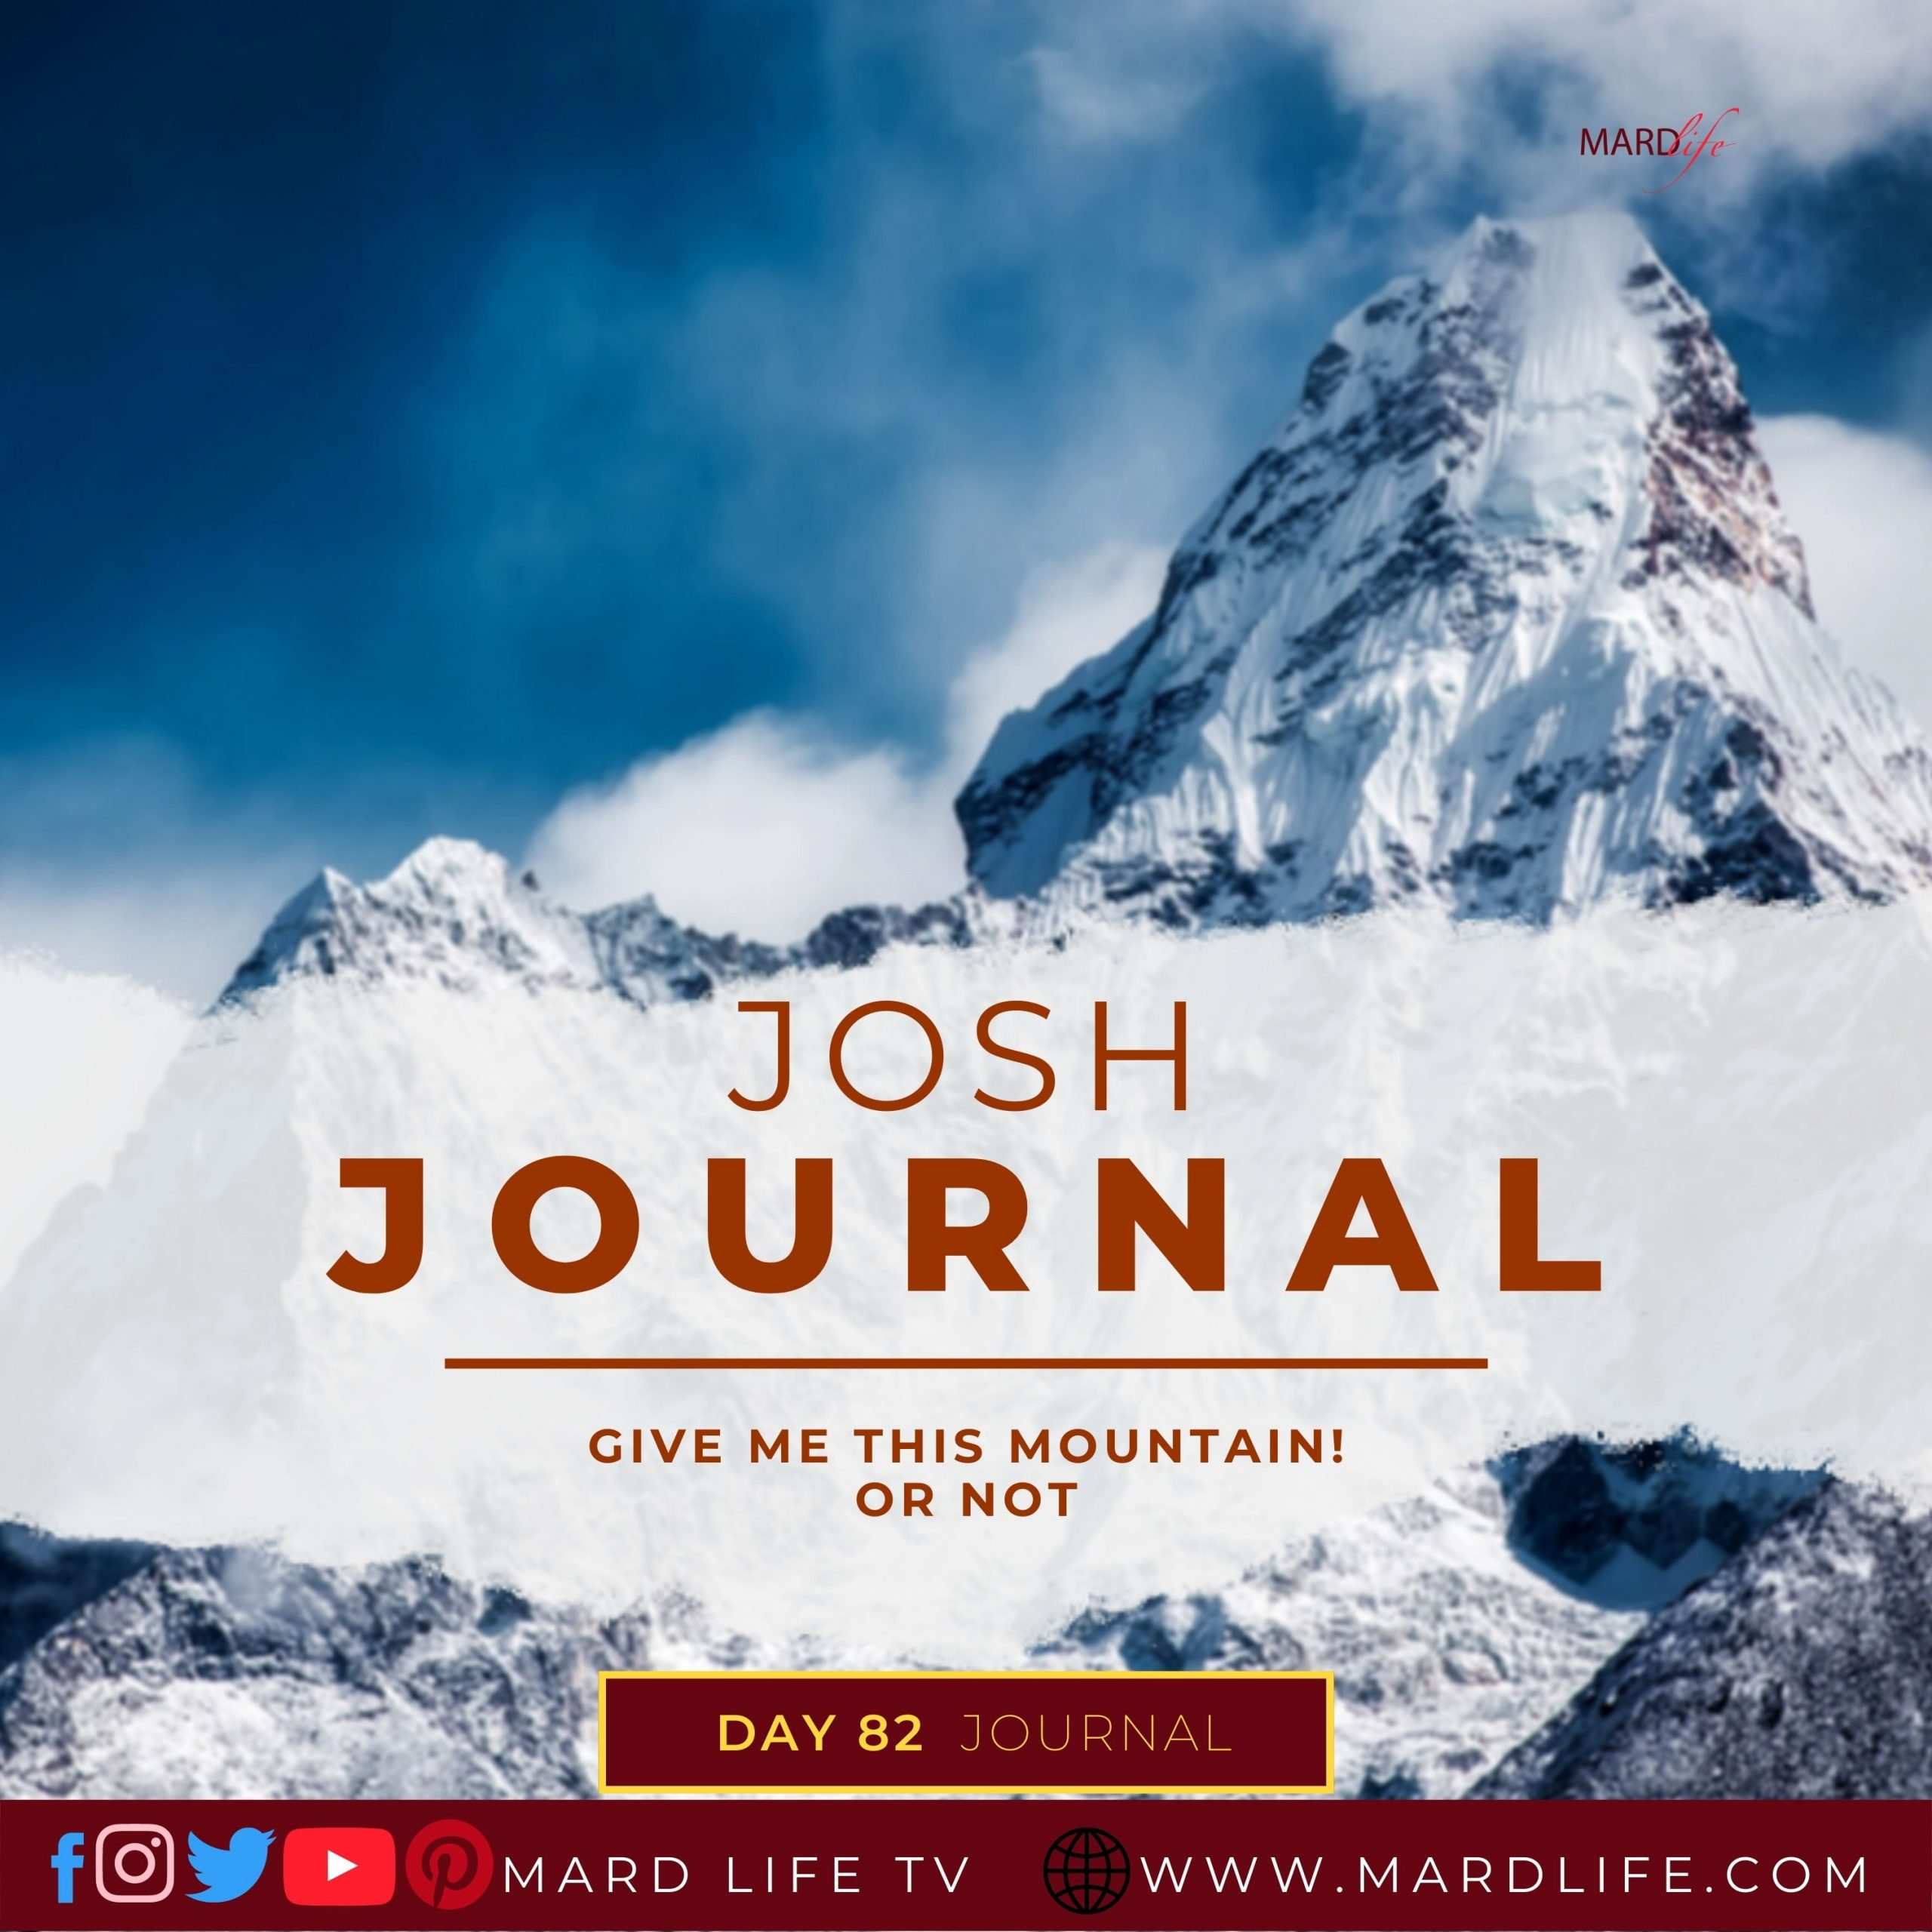 Give Me This Mountain, Mountain, Caleb, Joshua, Fatigue, Tired, Strength, Challenge, Opportunity, Weakness, Refreshed,